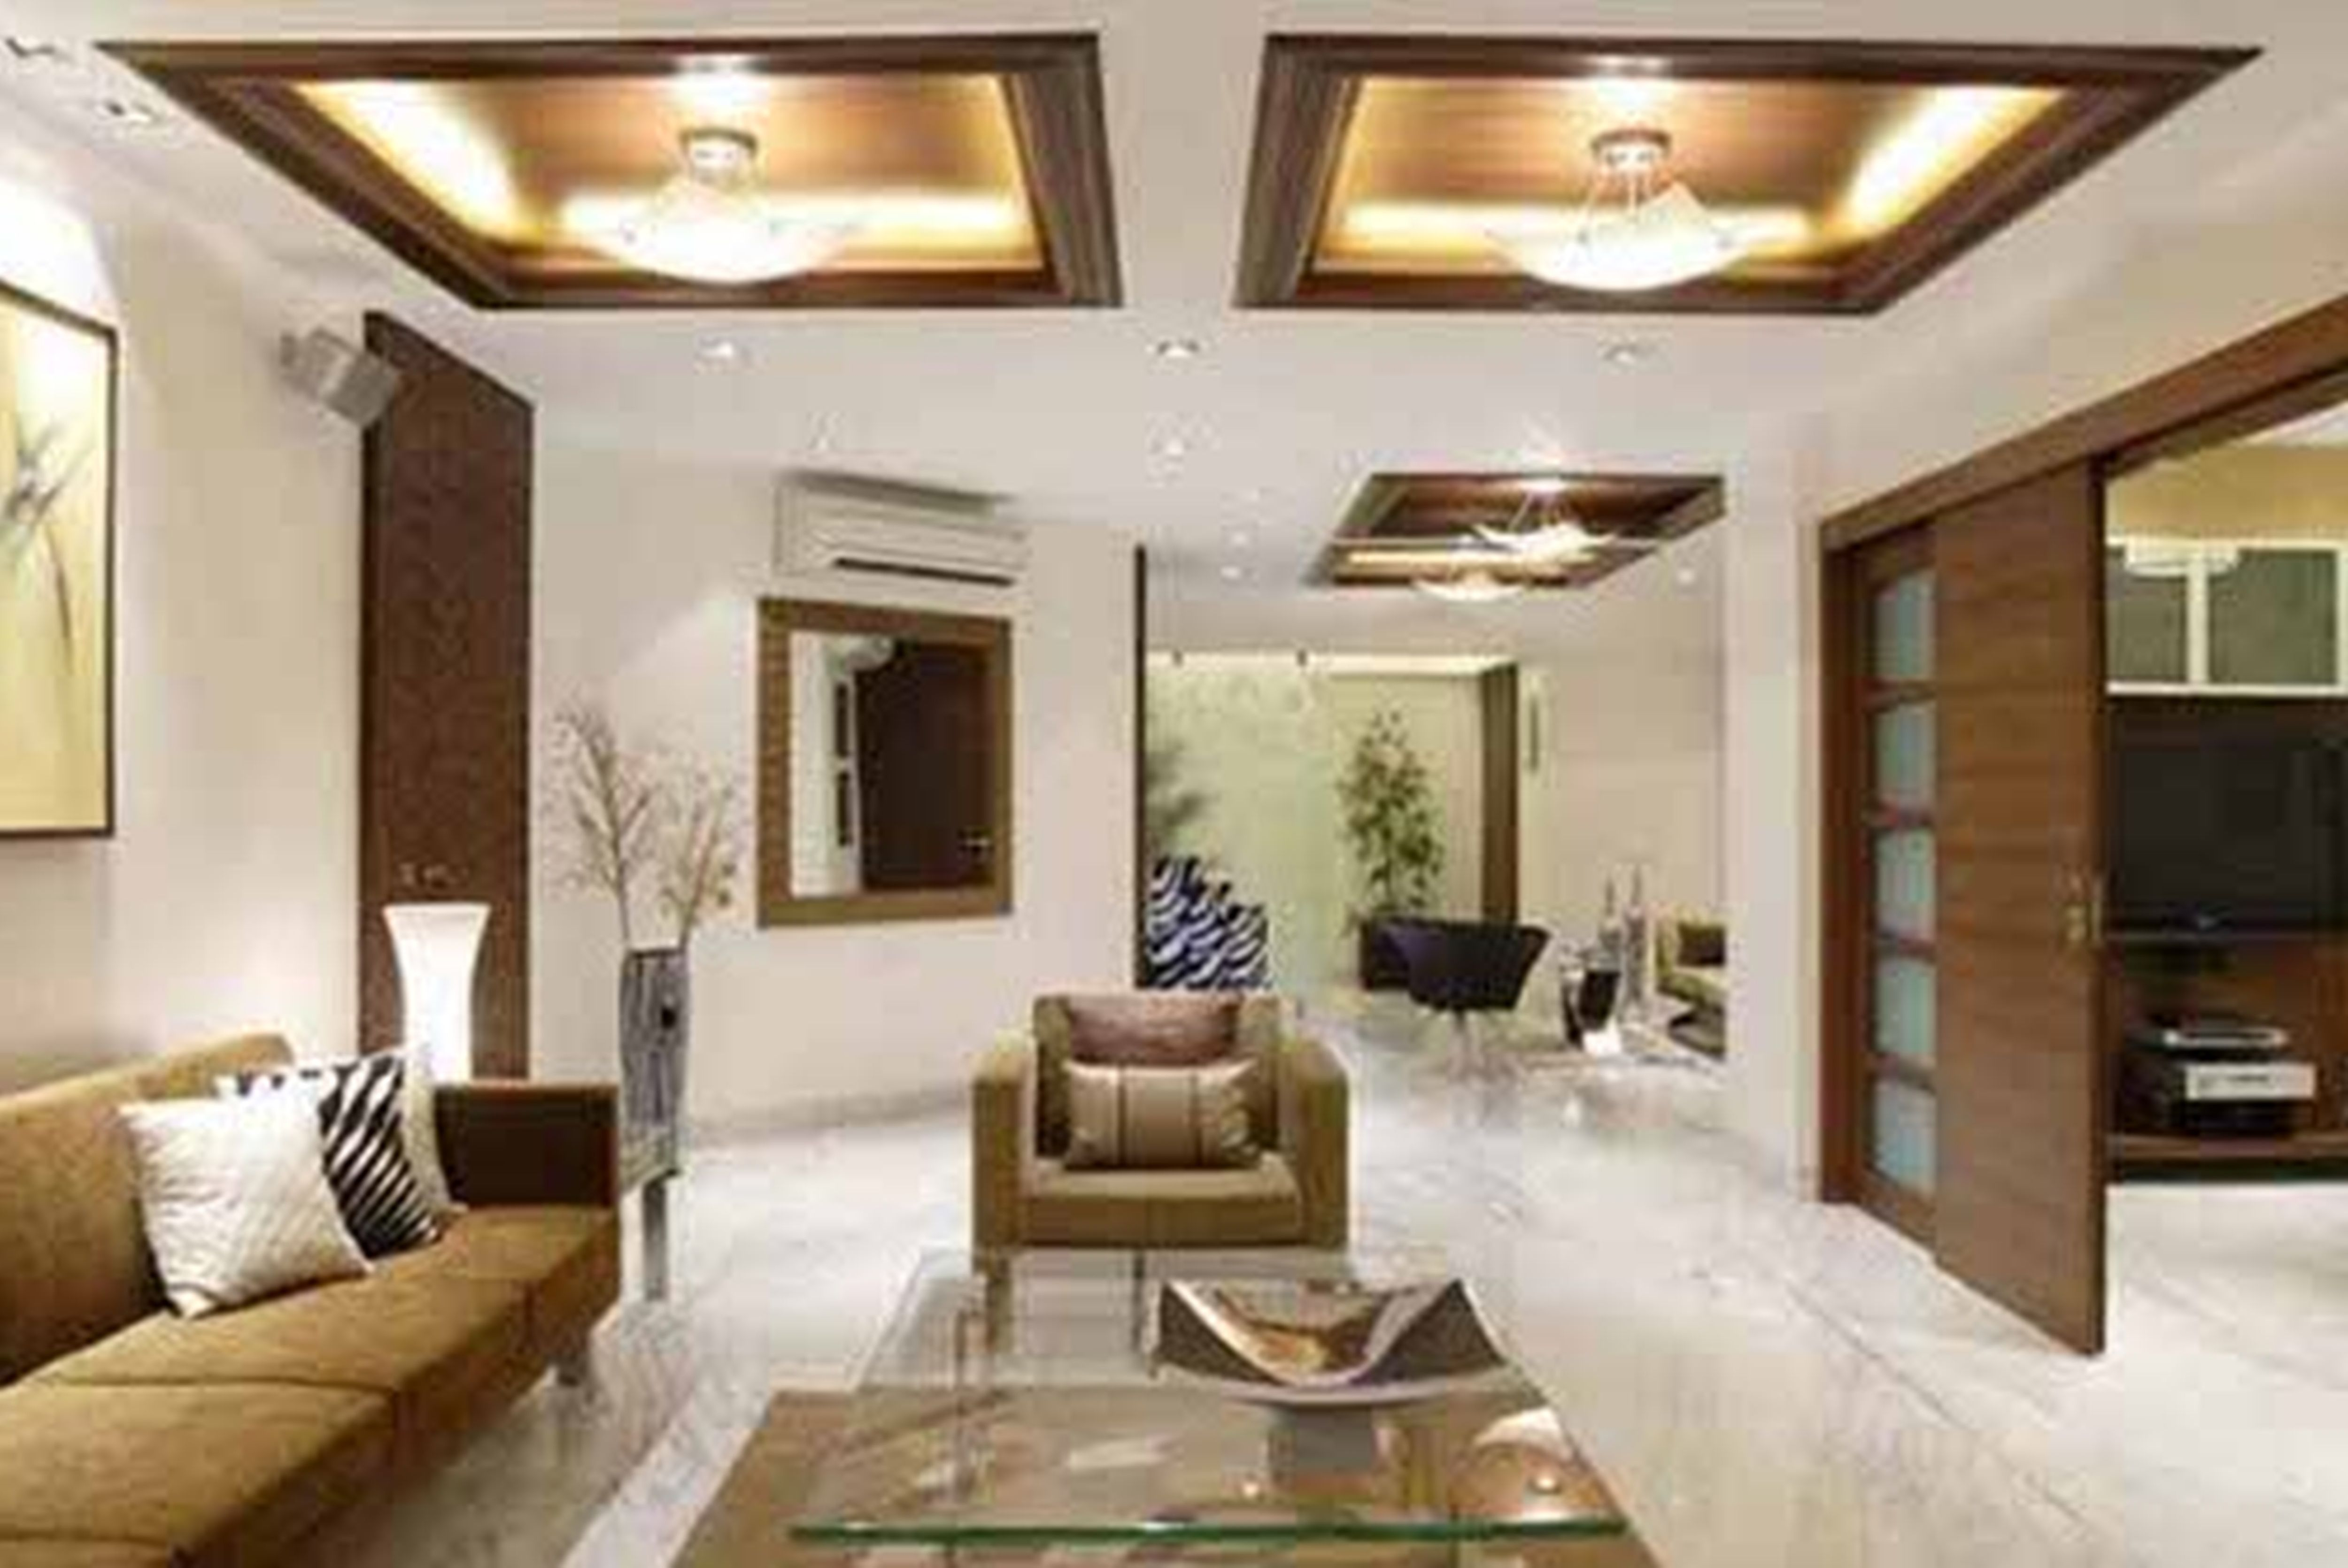 Affordable interior design ideas joy studio design Cheap home interior